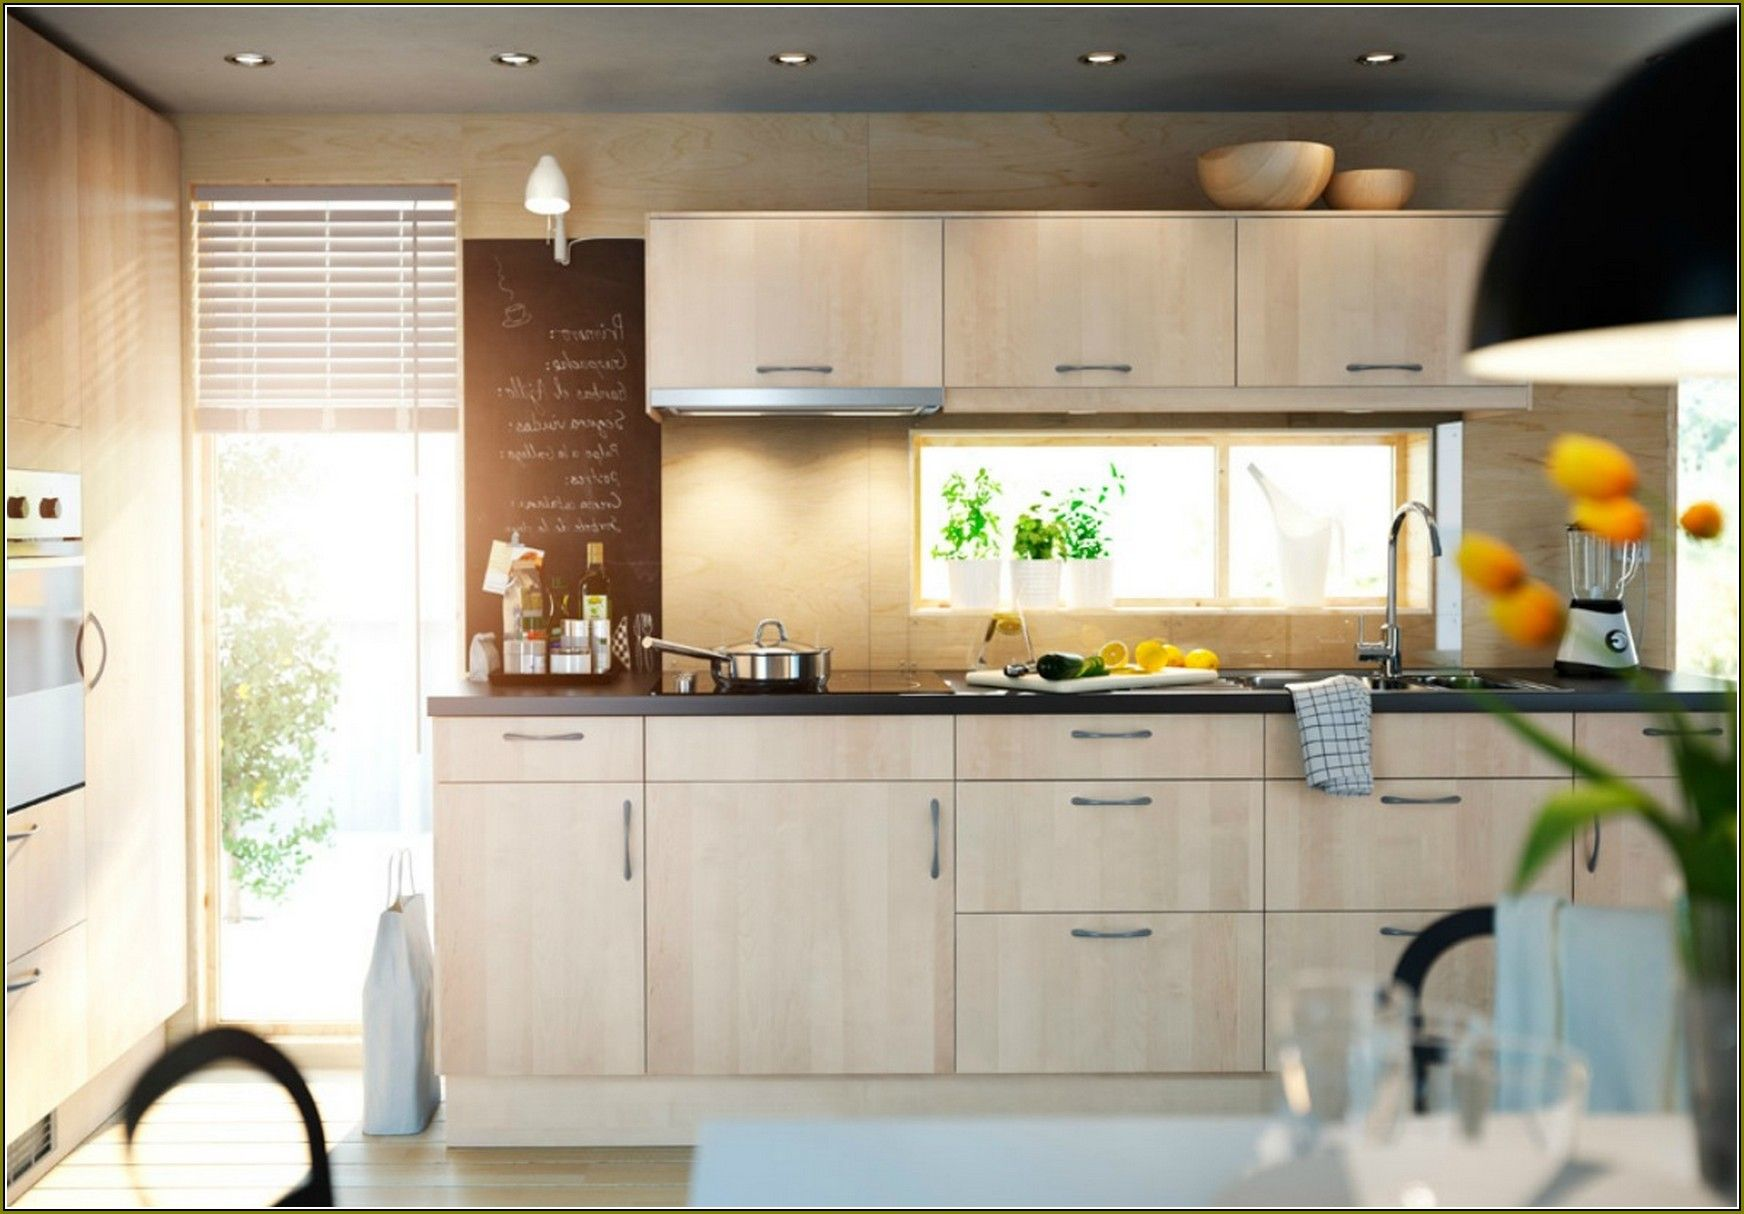 Ikea Birch Kitchen Cabinets Birch Kitchen Cabinets Unfinished Kitchen Cabinets Kitchen Cabinets